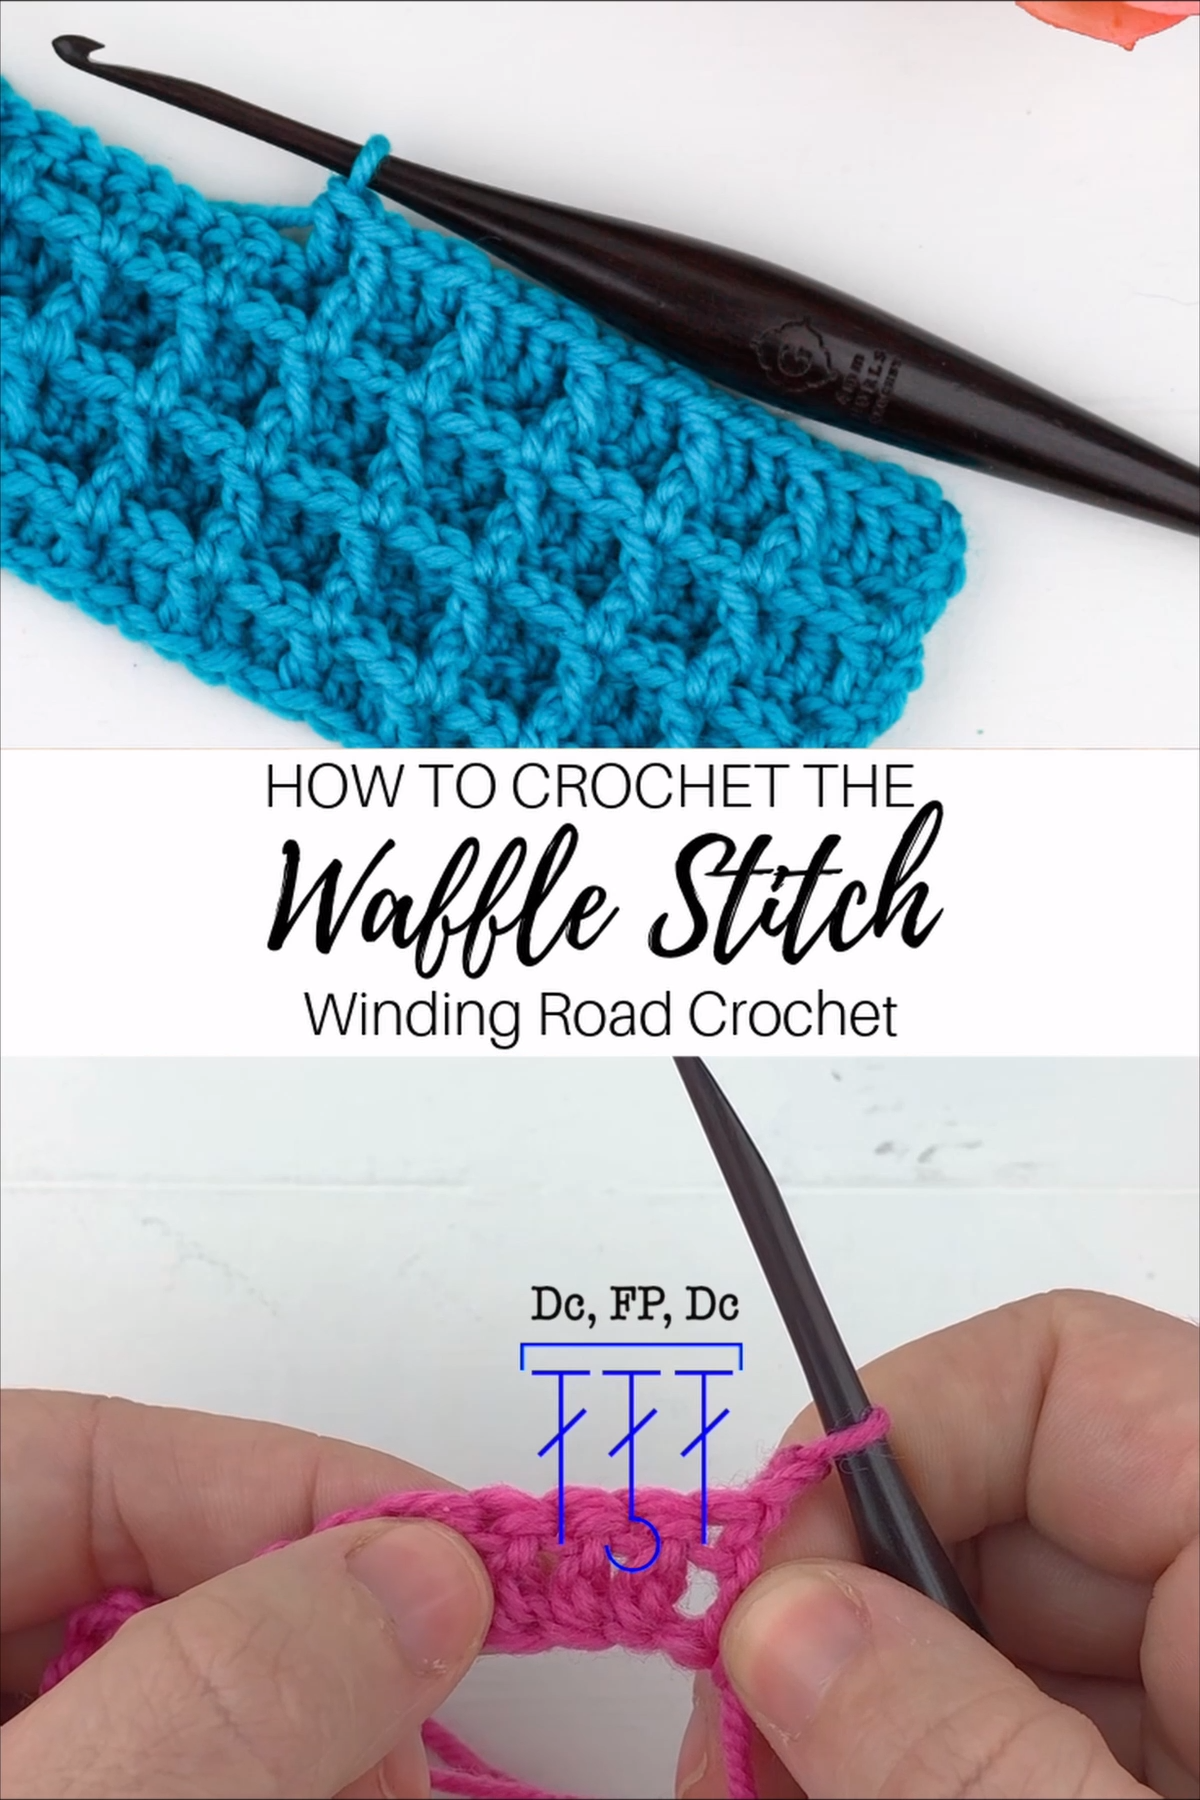 Crochet Waffle Stitch Video and Photo Tutorial -  Learn to crochet the waffle stitch with these clear video and photo tutorials by Winding Road Crochet. #crochetstitch #videotutorial #phototutorial #crochet  Crocheters avoid using pointy small needles or even units to create the initiatives; they employ a single crochet hook. The land may be big or small, or perhaps almost any dimension around between. It will typically possibly be made from steel, lightweight aluminum, bamboo bed sheets, plast